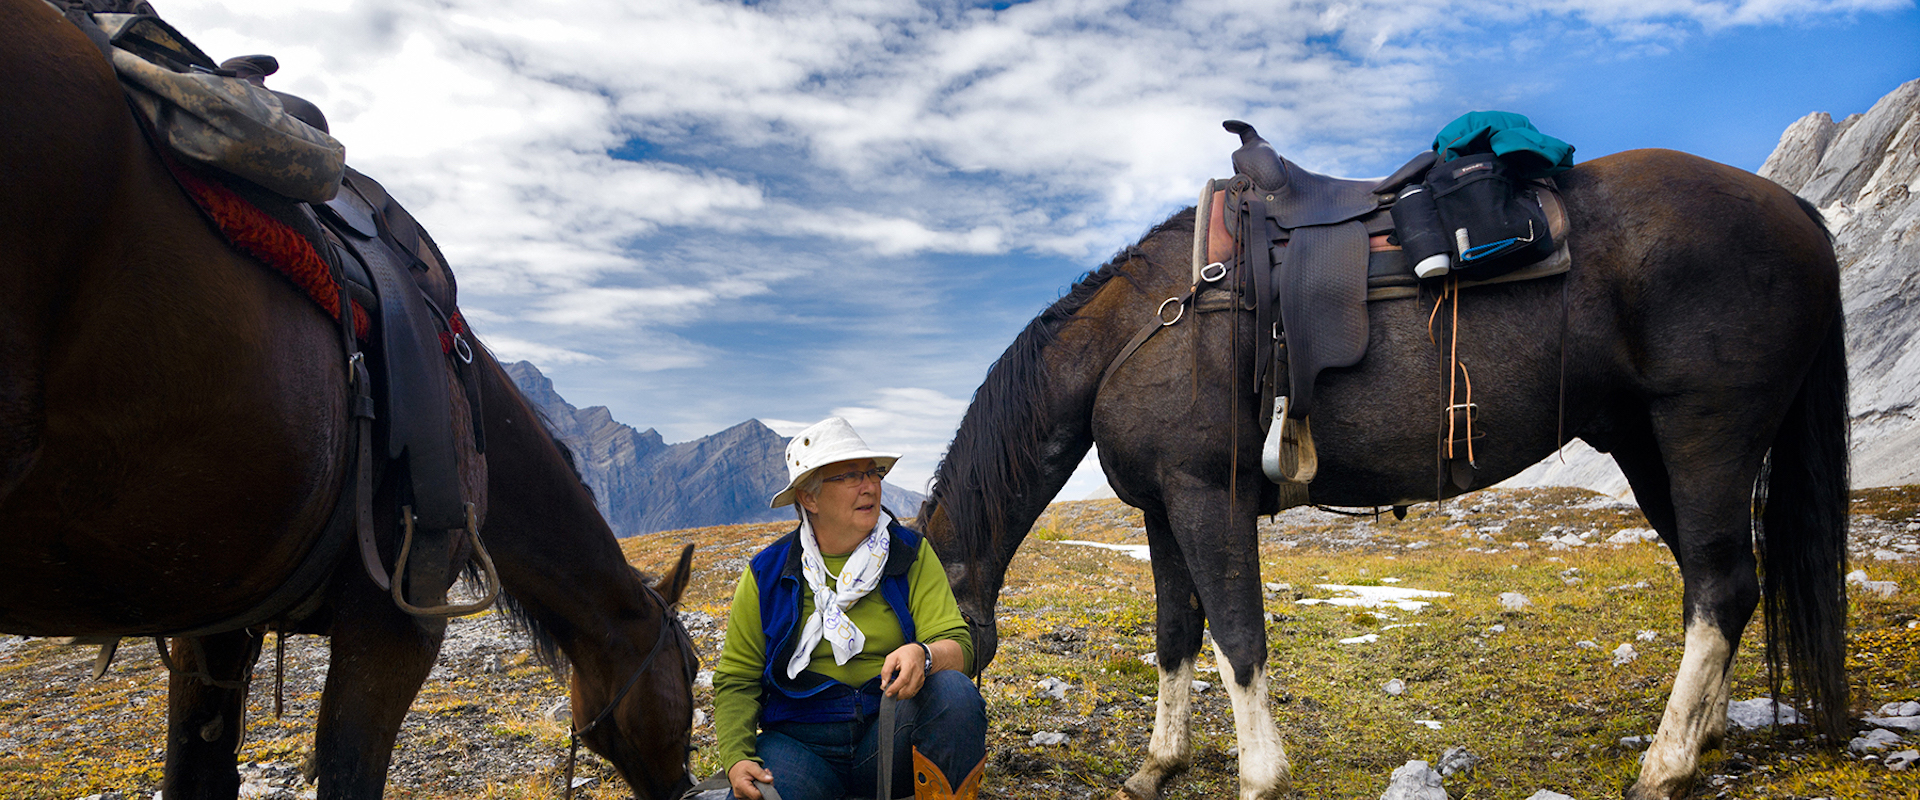 Horseback Riding Vacations, Banff Trail Riders